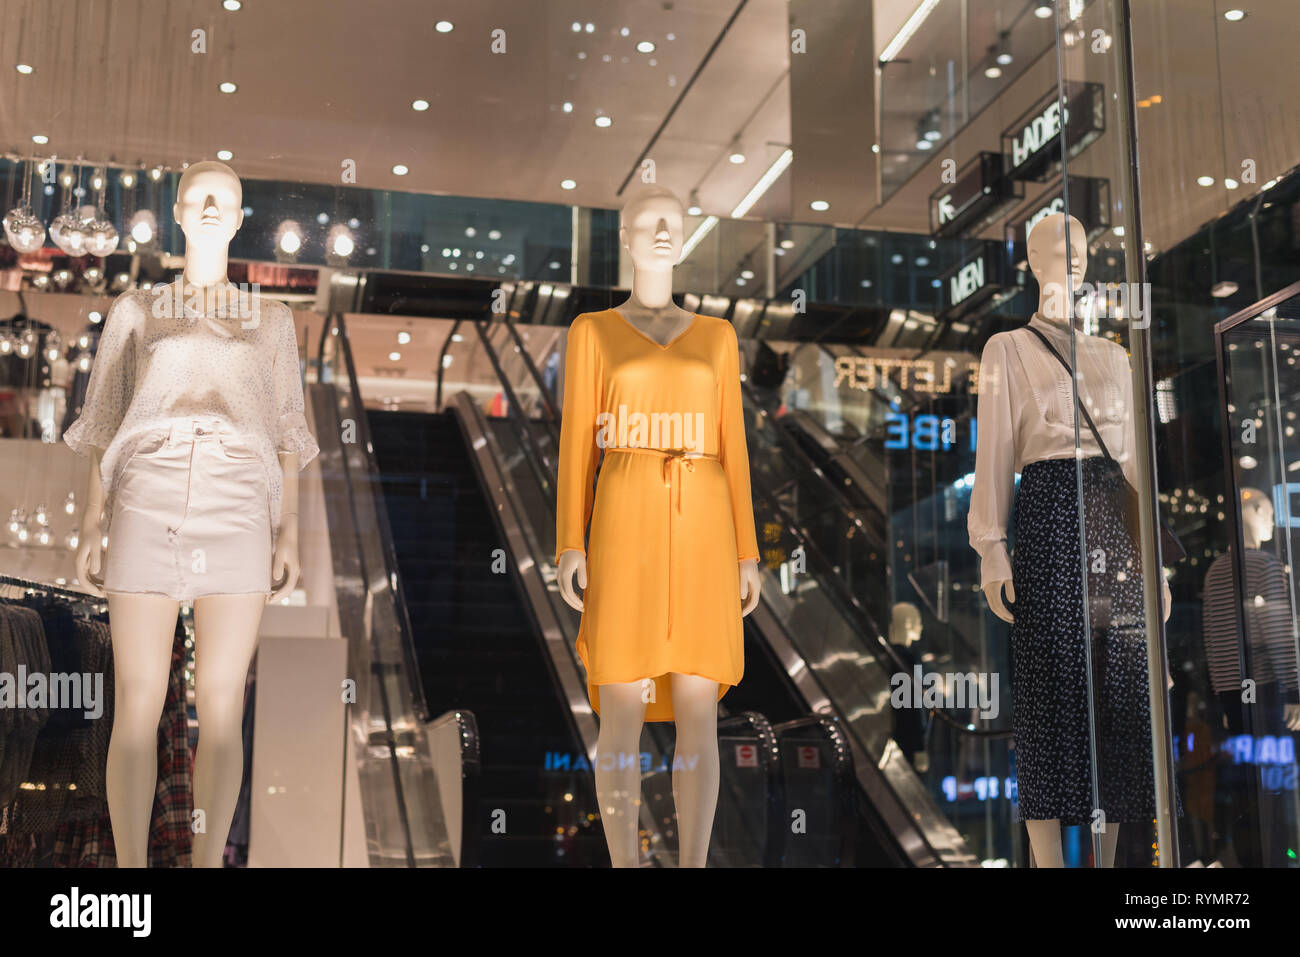 1acb6c0678 Ho Chi Minh City, Vietnam - January 8, 2019: women mannequins in summer